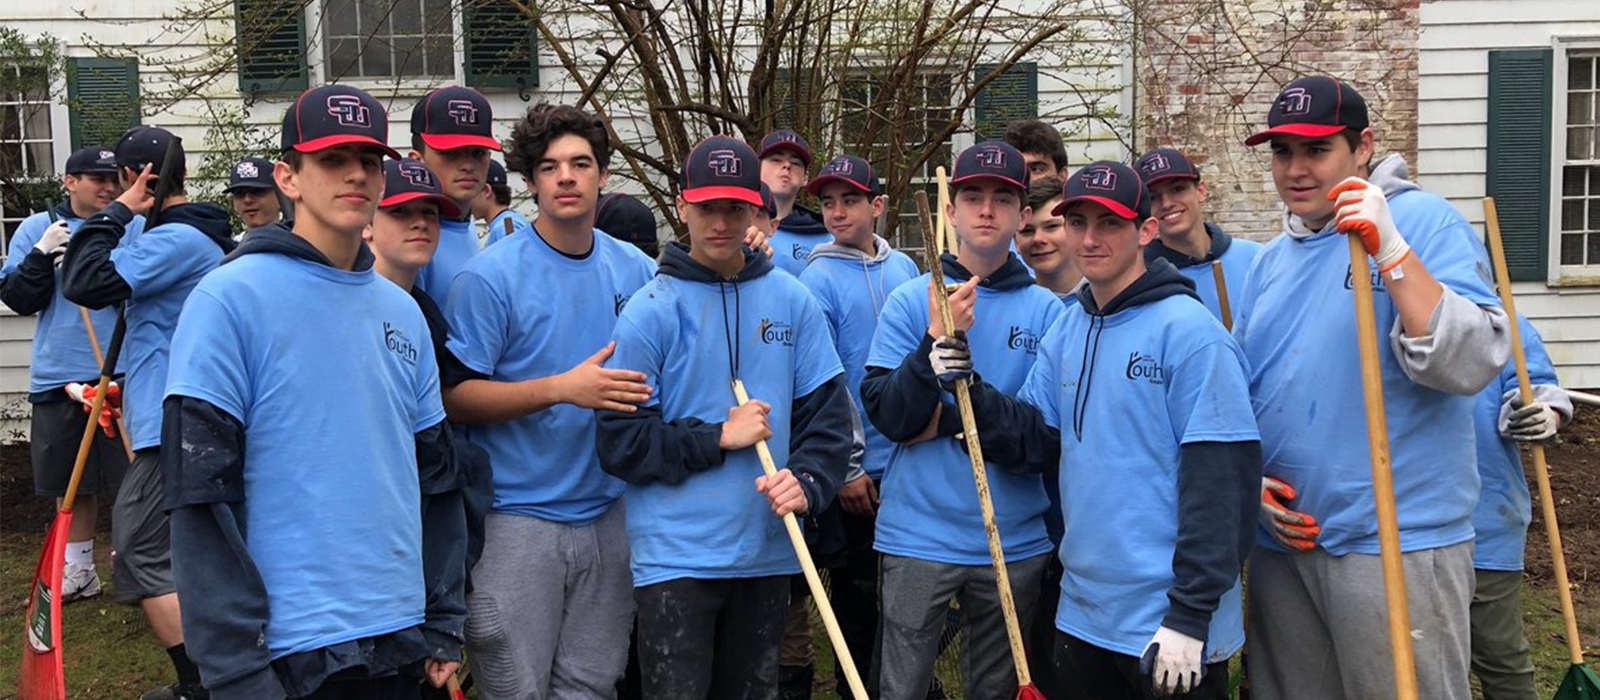 West Baseball Pitches in for Community photo